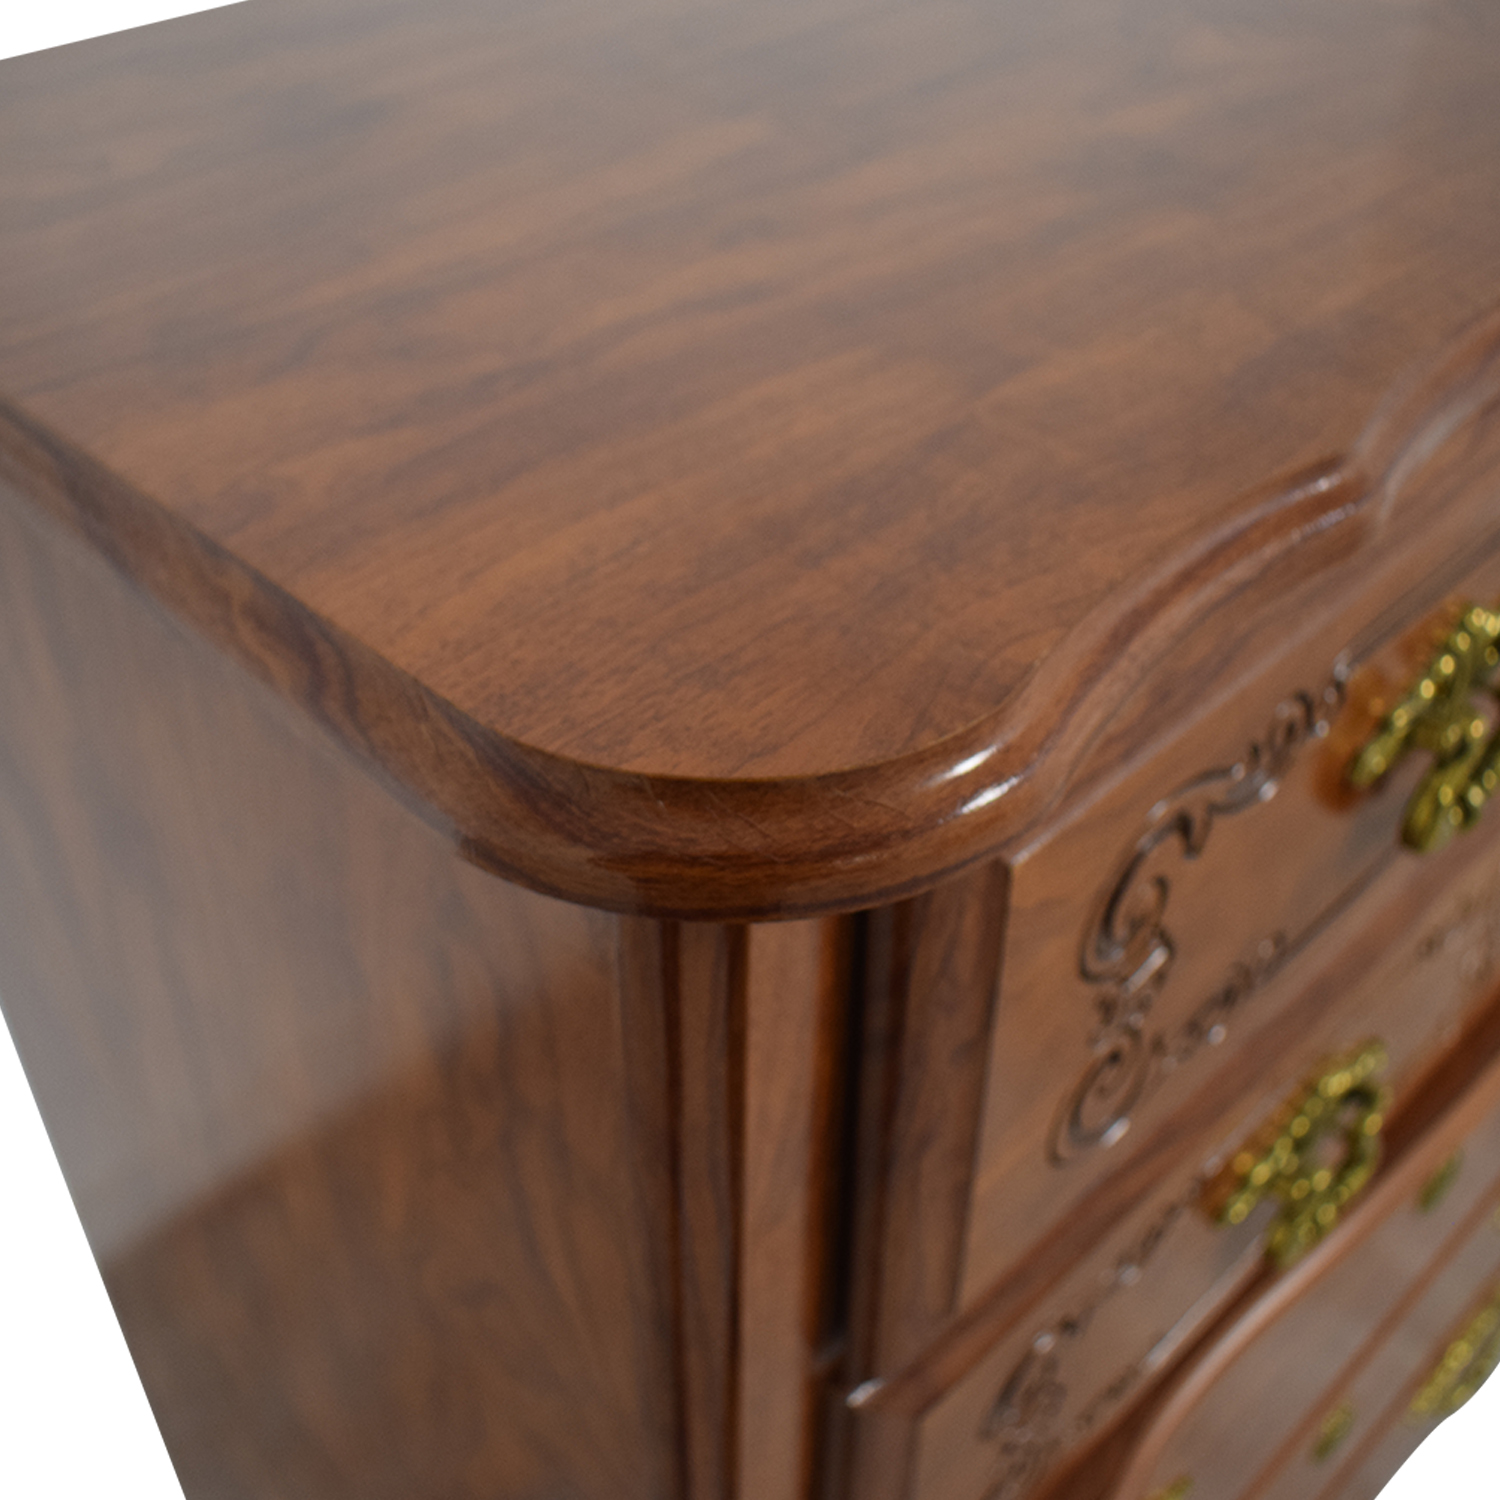 Wood Five-Drawer Tall Chest of Drawers Dressers